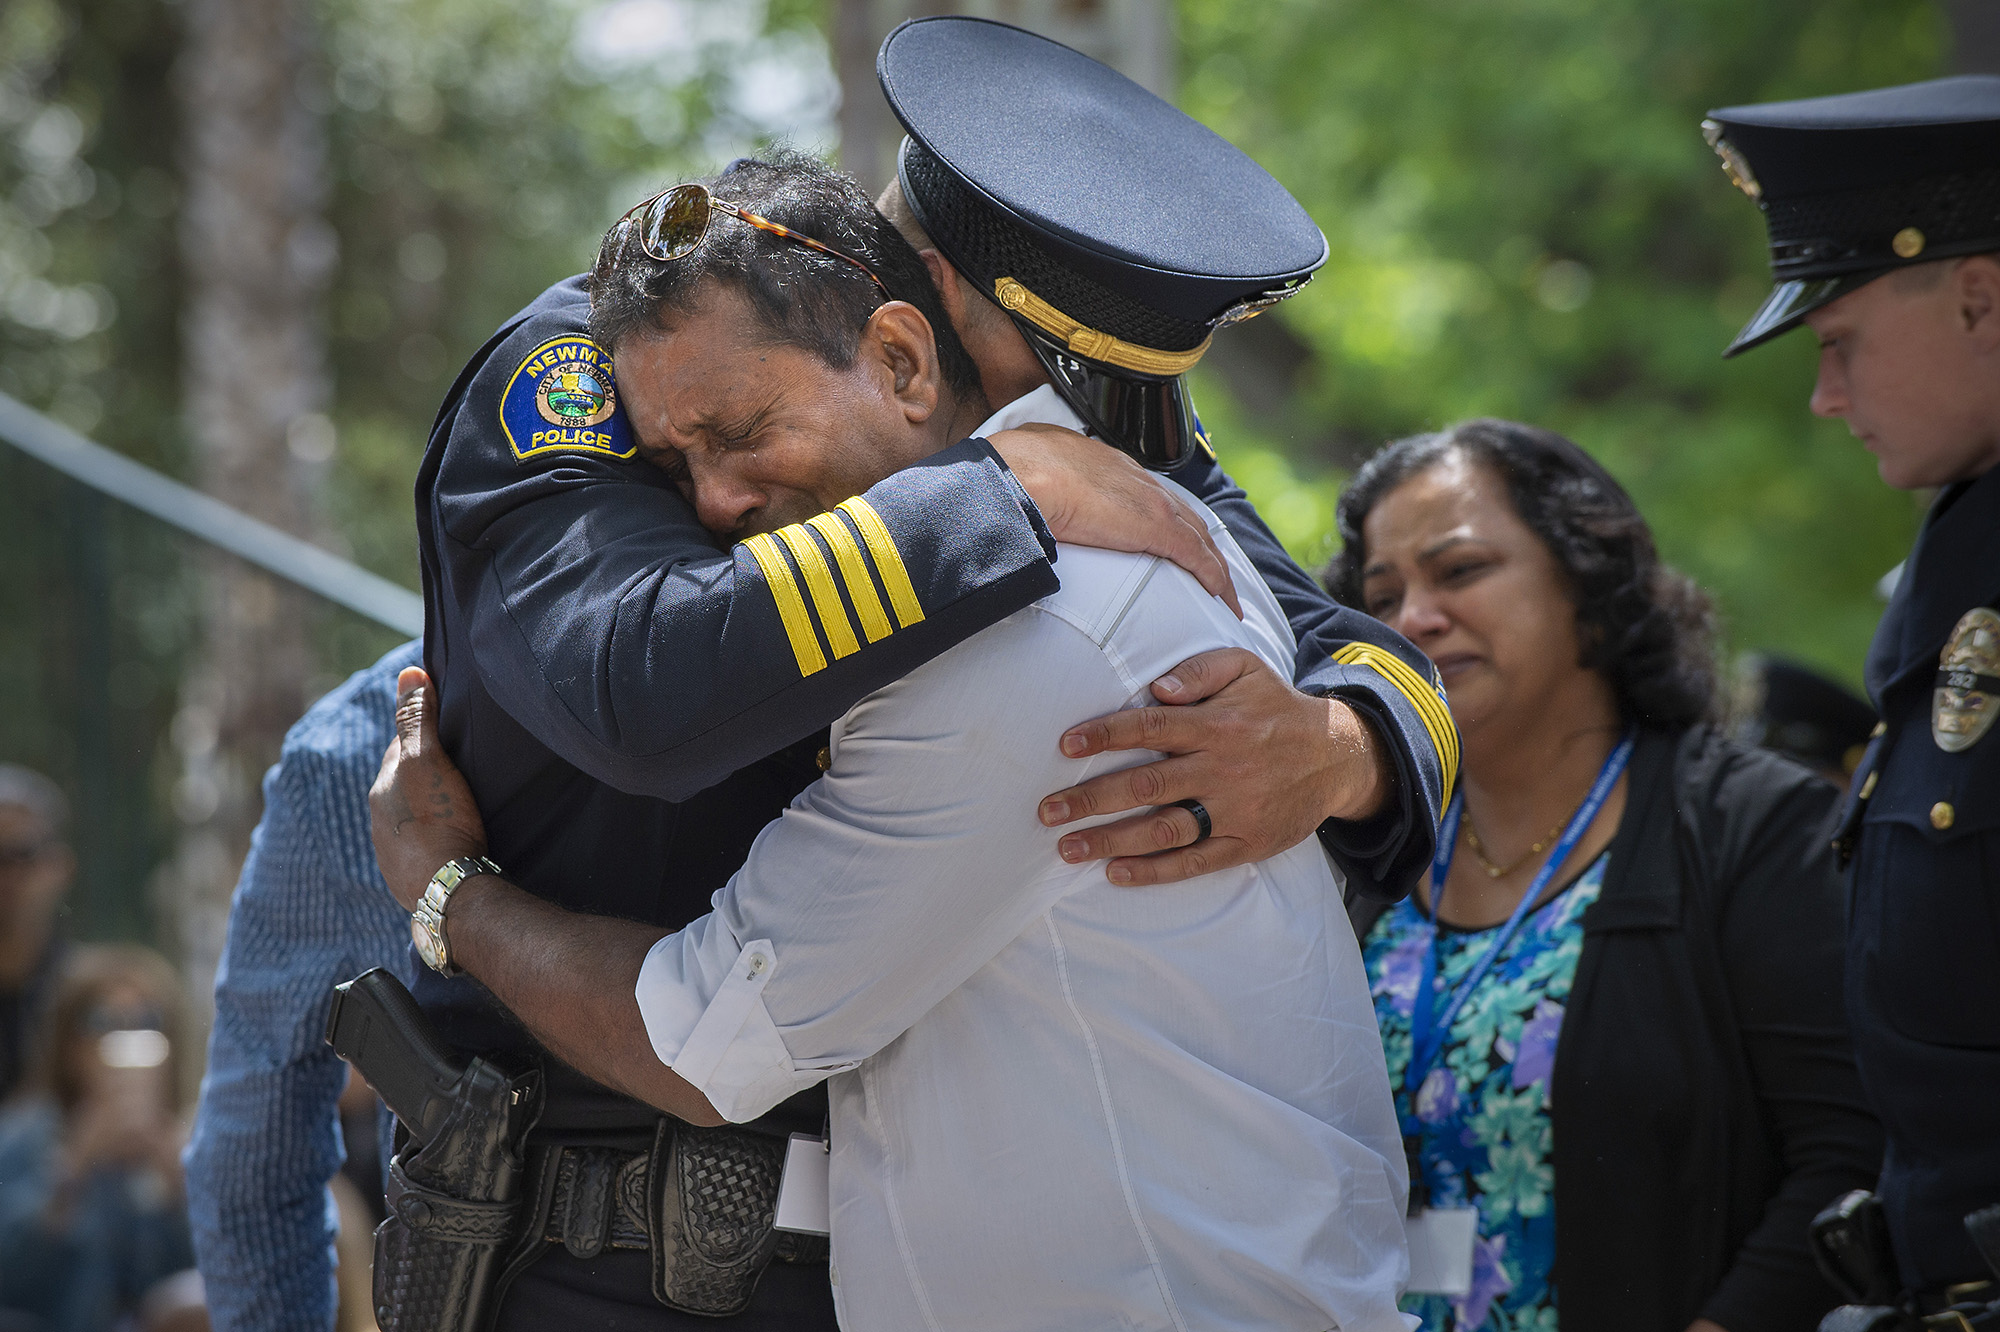 Newman, CA Police Chief Randy Richardson comforts Veer Singh, relative of slain officer Ronil Singh, during the Peace Officers' Memorial Ceremony in Sacramento, Calif. Monday, May 6, 2019. Photo by Randall Benton for CALmatters.